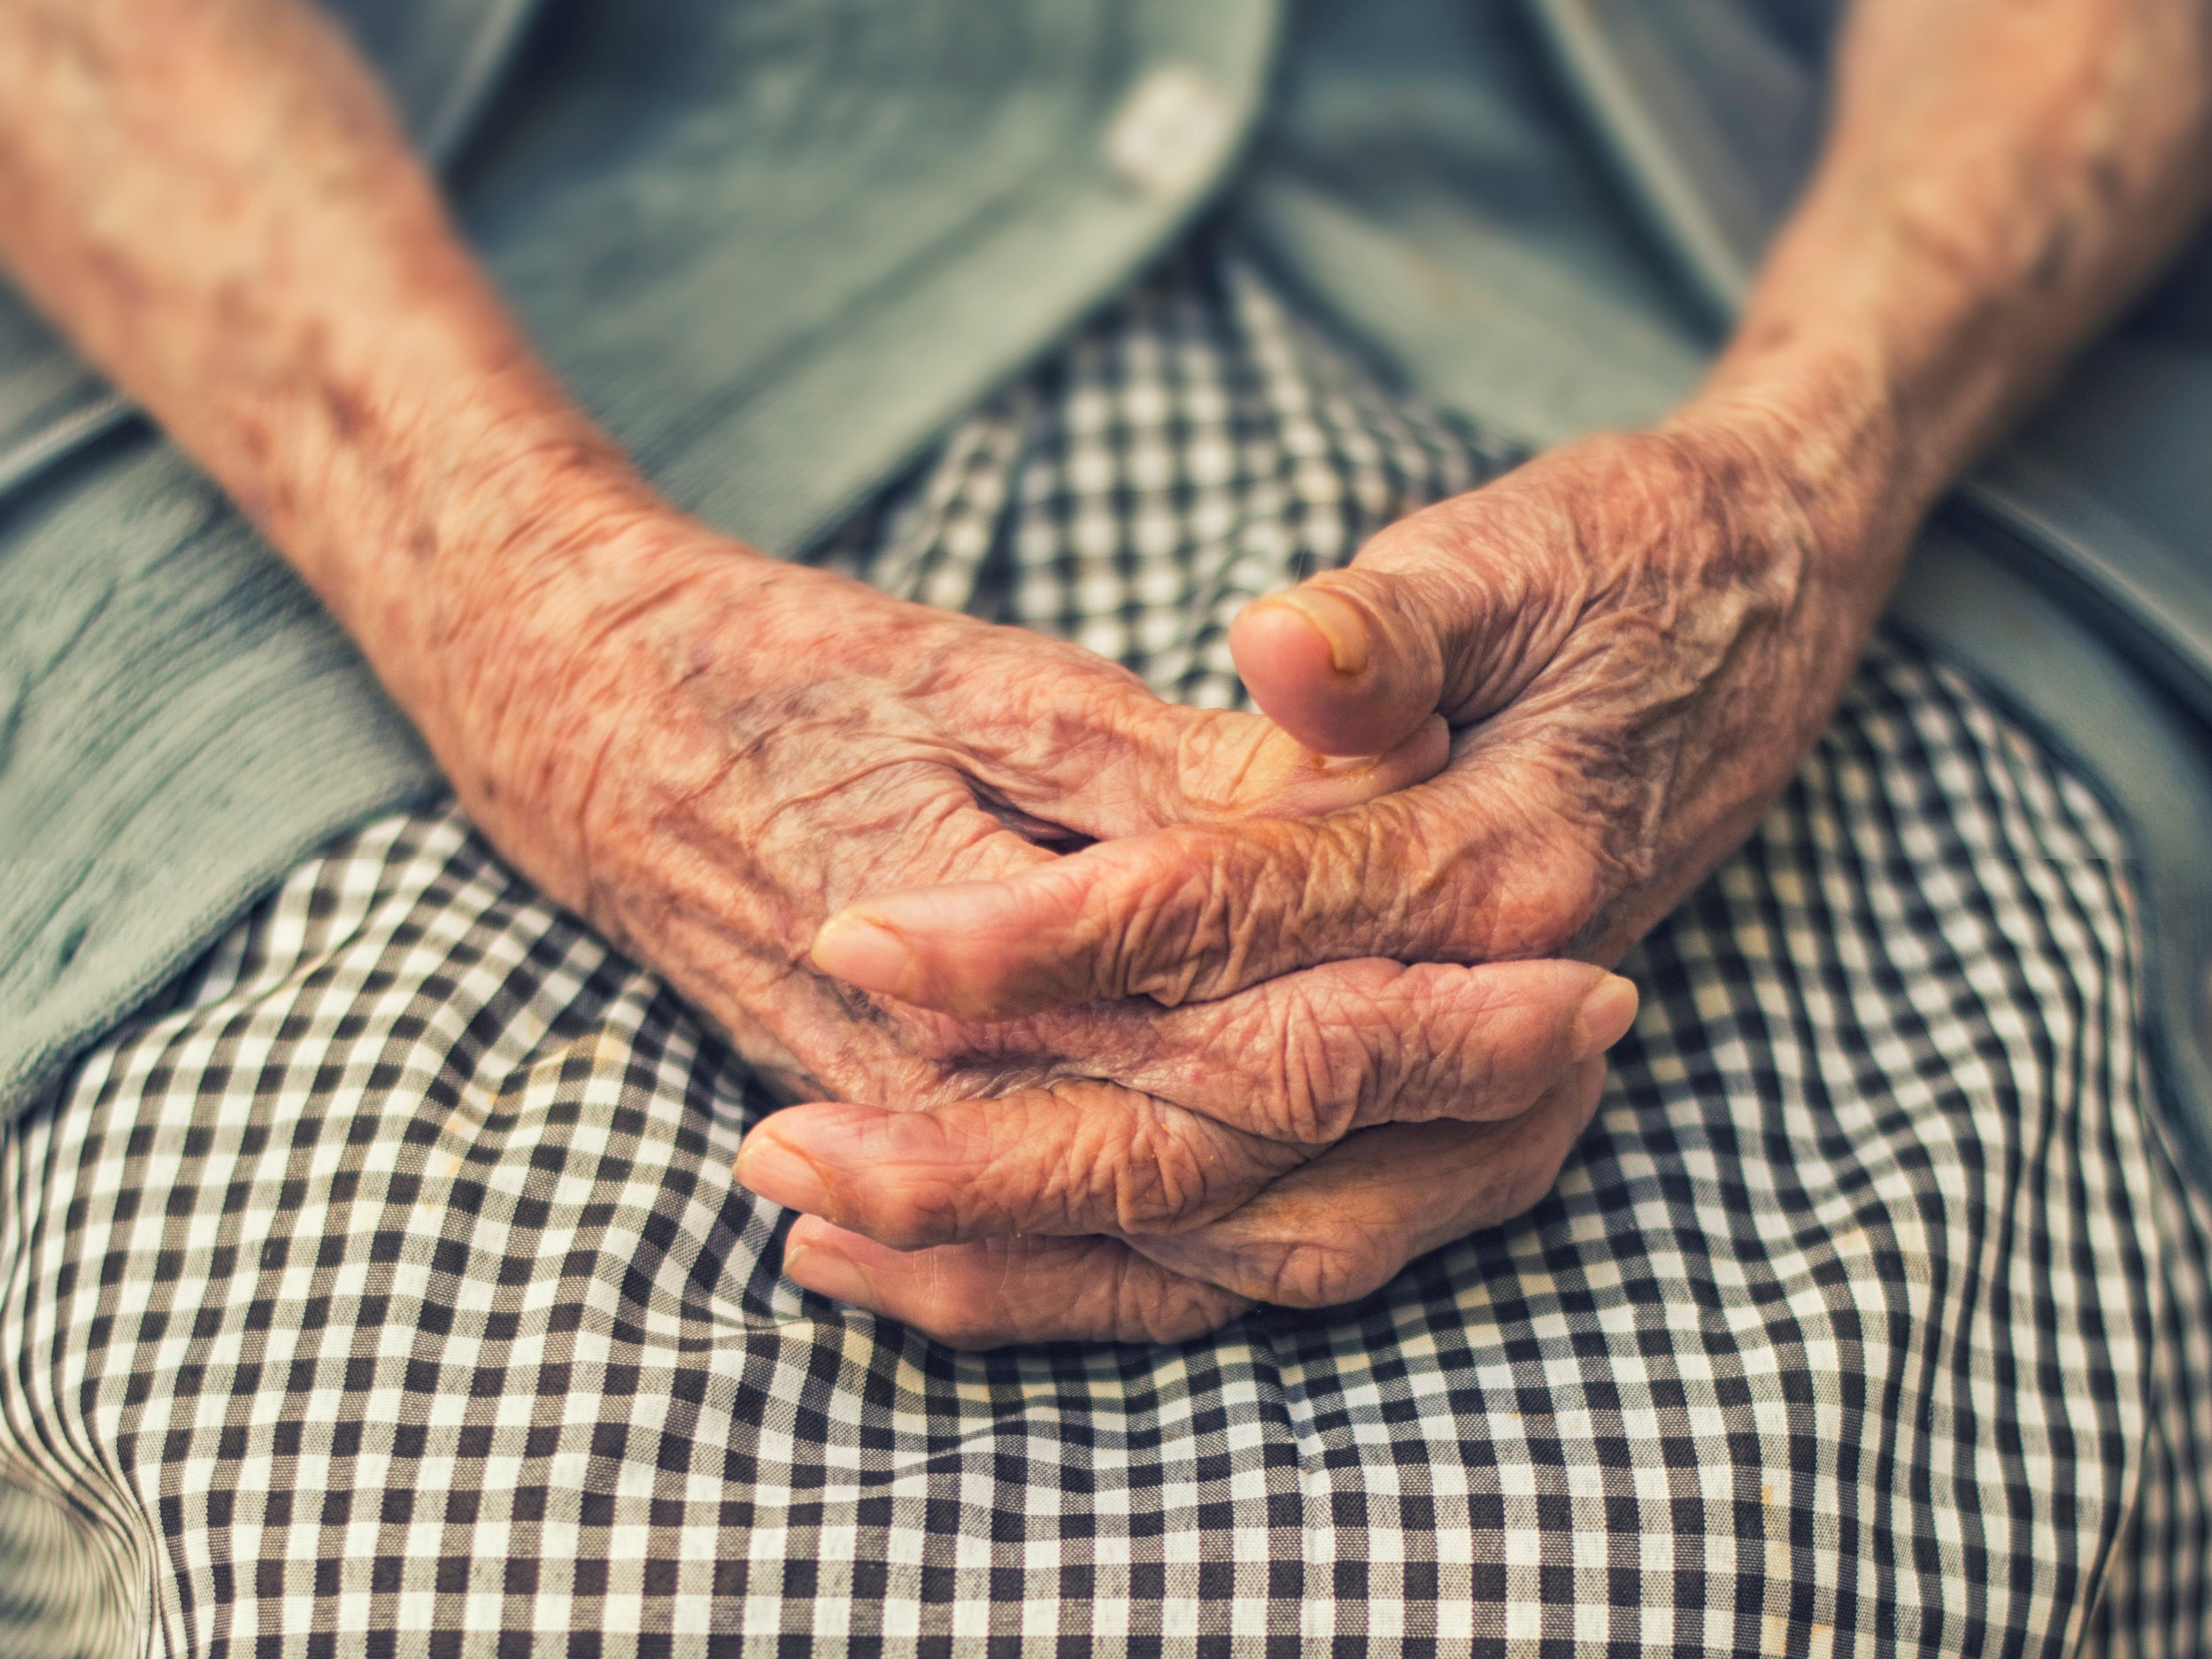 nursing home ministry - Once a month we bring a simple service of singing, prayer, the Word and communion to two area nursing homes.Upcoming Dates: September 1st, October 6th, November 3rd